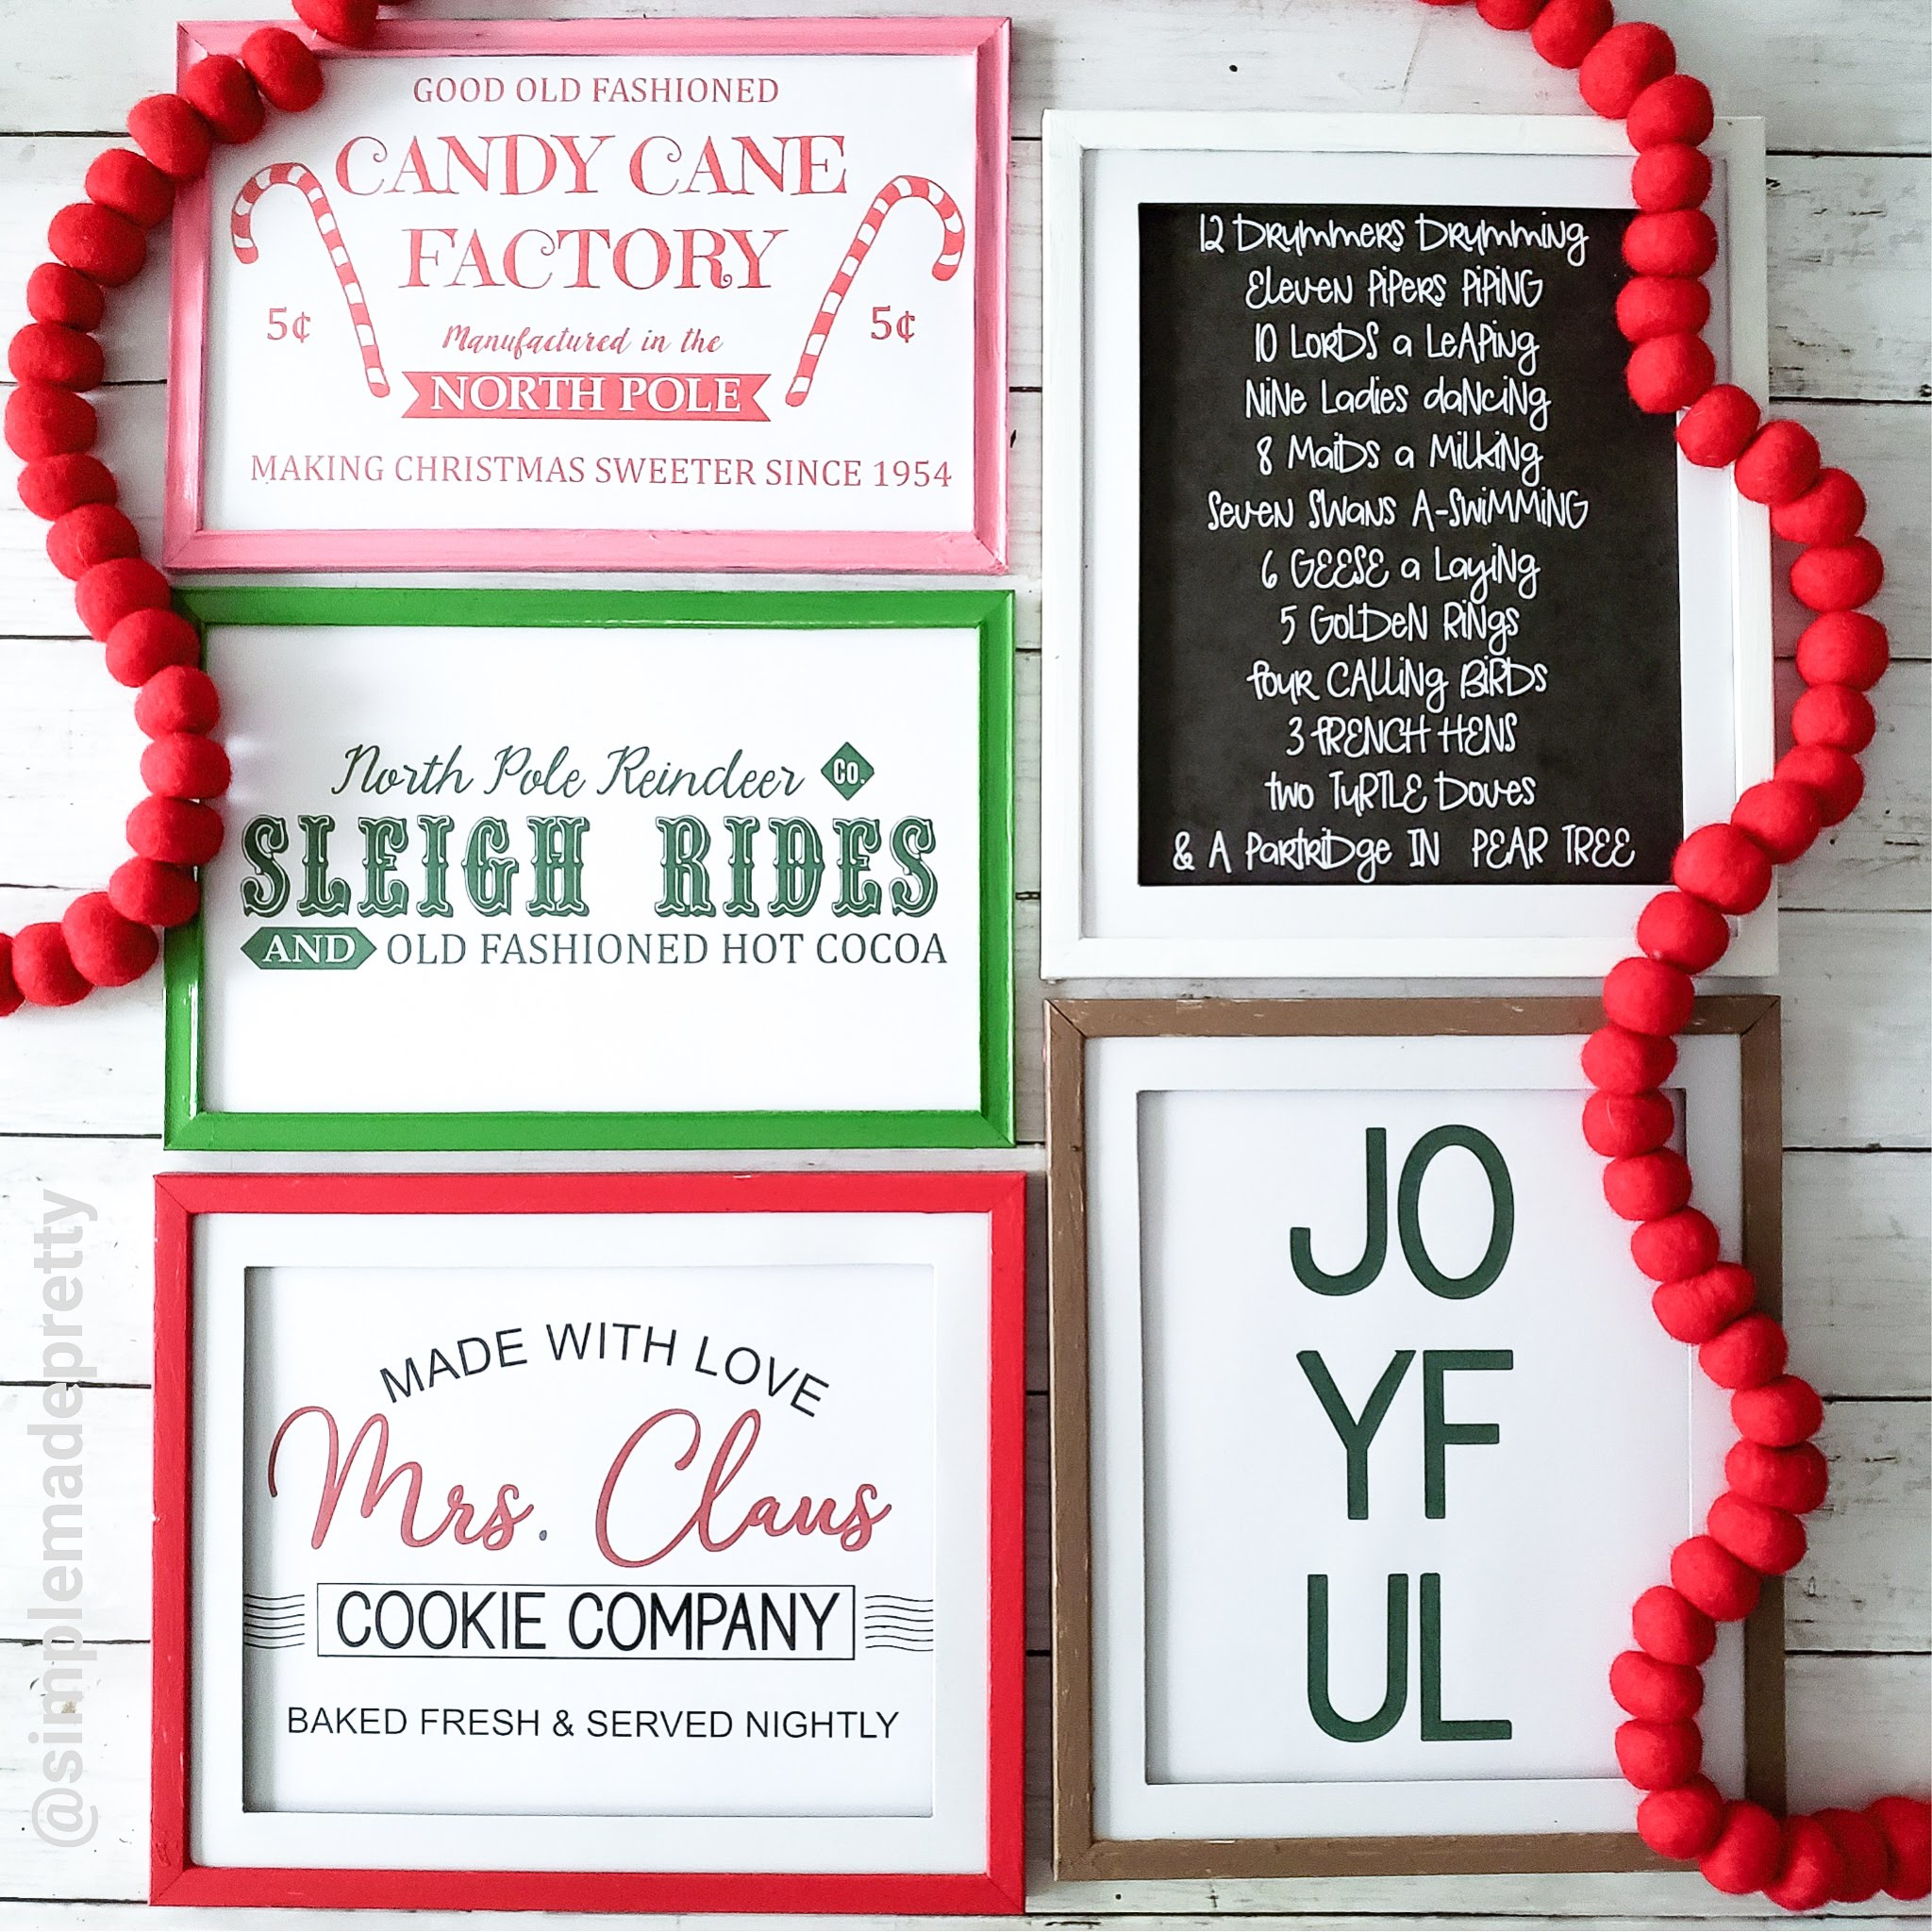 target home decor, target dollar section Christmas 2019, target dollar section, target dollar section 2019, target dollar section Christmas, target dollar section decor, target dollar section crafts, free printable wall art, free printable wall art quotes, free printable wall art farmhouse, free printable wall art Christmas, Christmas decor ideas, Christmas decor ideas DIY, Christmas decor ideas on a budget, Christmas decor ideas Dollar Stores, Christmas decor ideas 2019